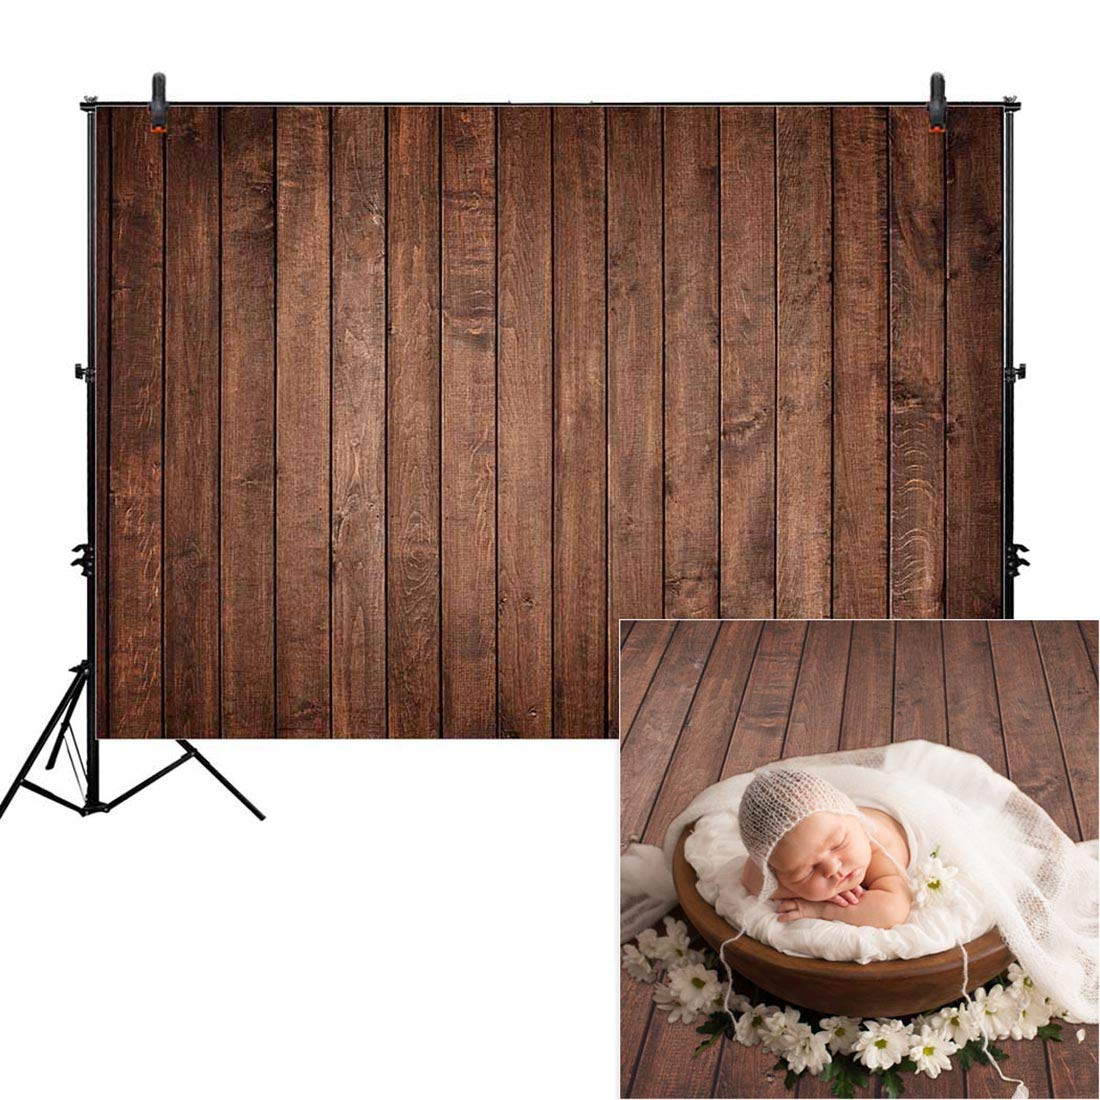 Allenjoy 7x5ft Fabric Vintage Brown Wood Backdrops for Newborn Photography Wrinkle Free Rustic Russet Grunge Wooden Floor Planks Wall Baby Portrait Still Life Product Photographer Photo Studio Props by Allenjoy (Image #1)